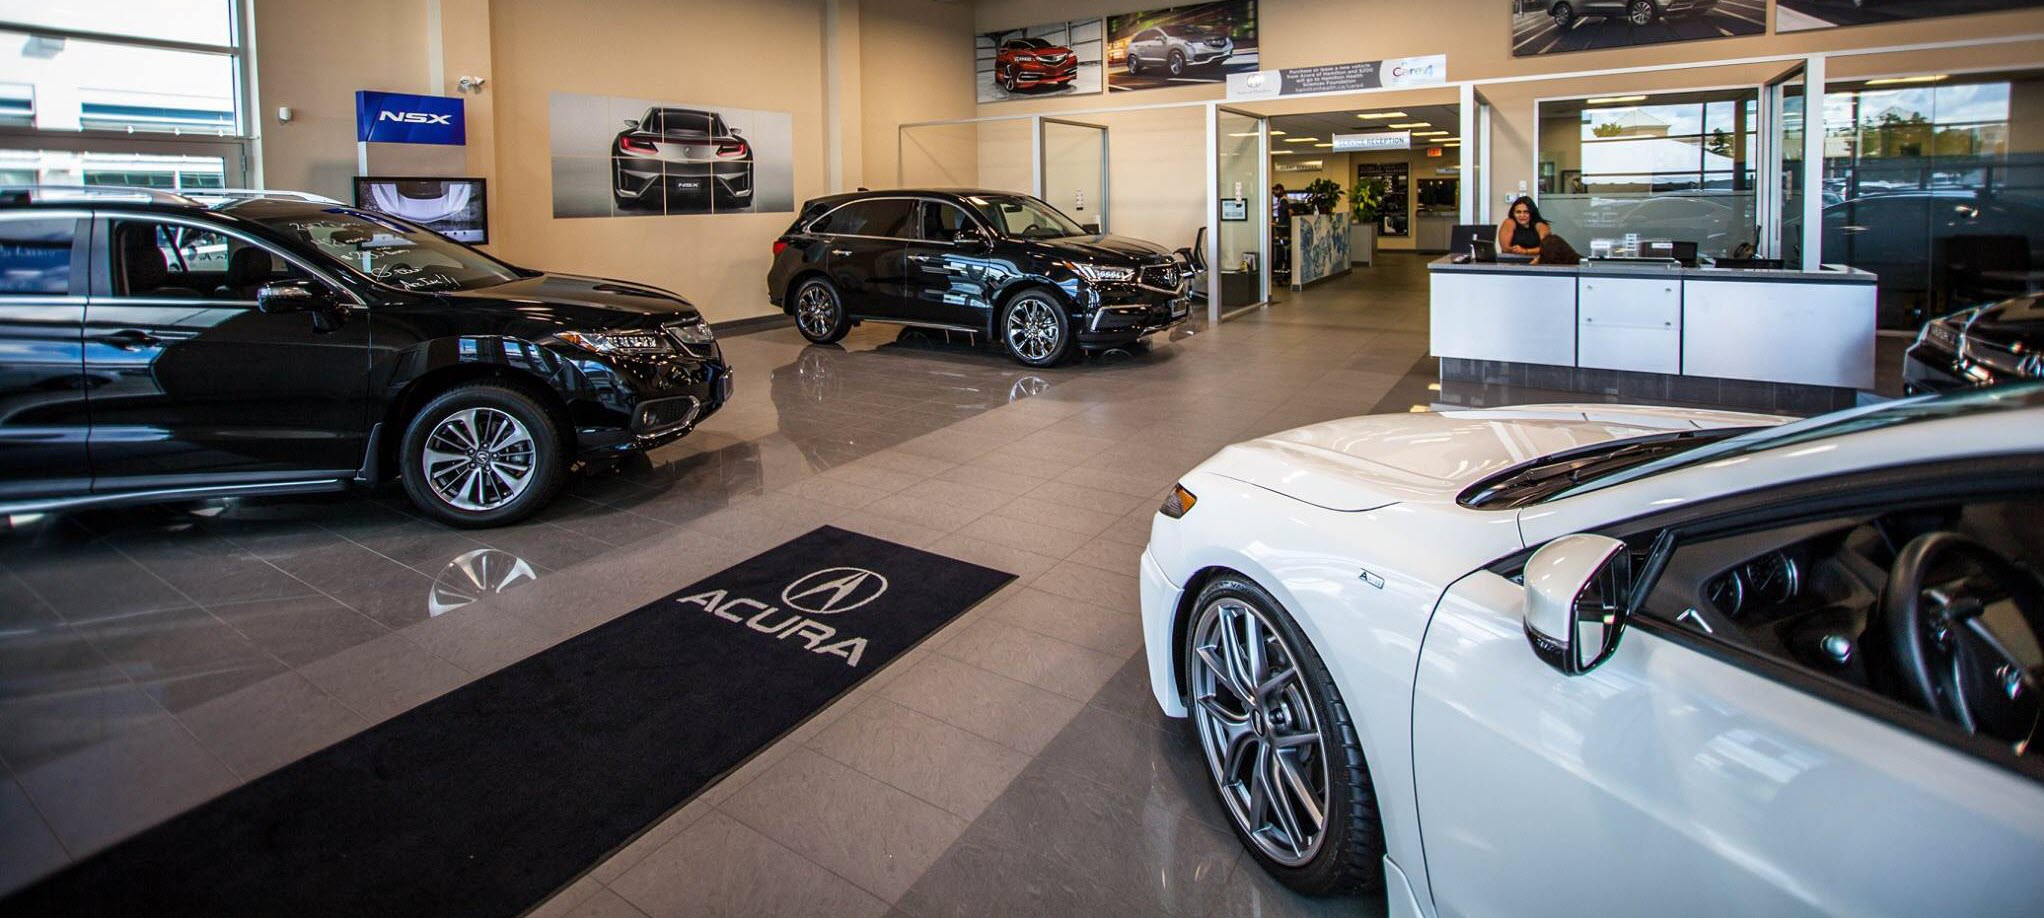 Inside Hamilton's premier Acura dealership.